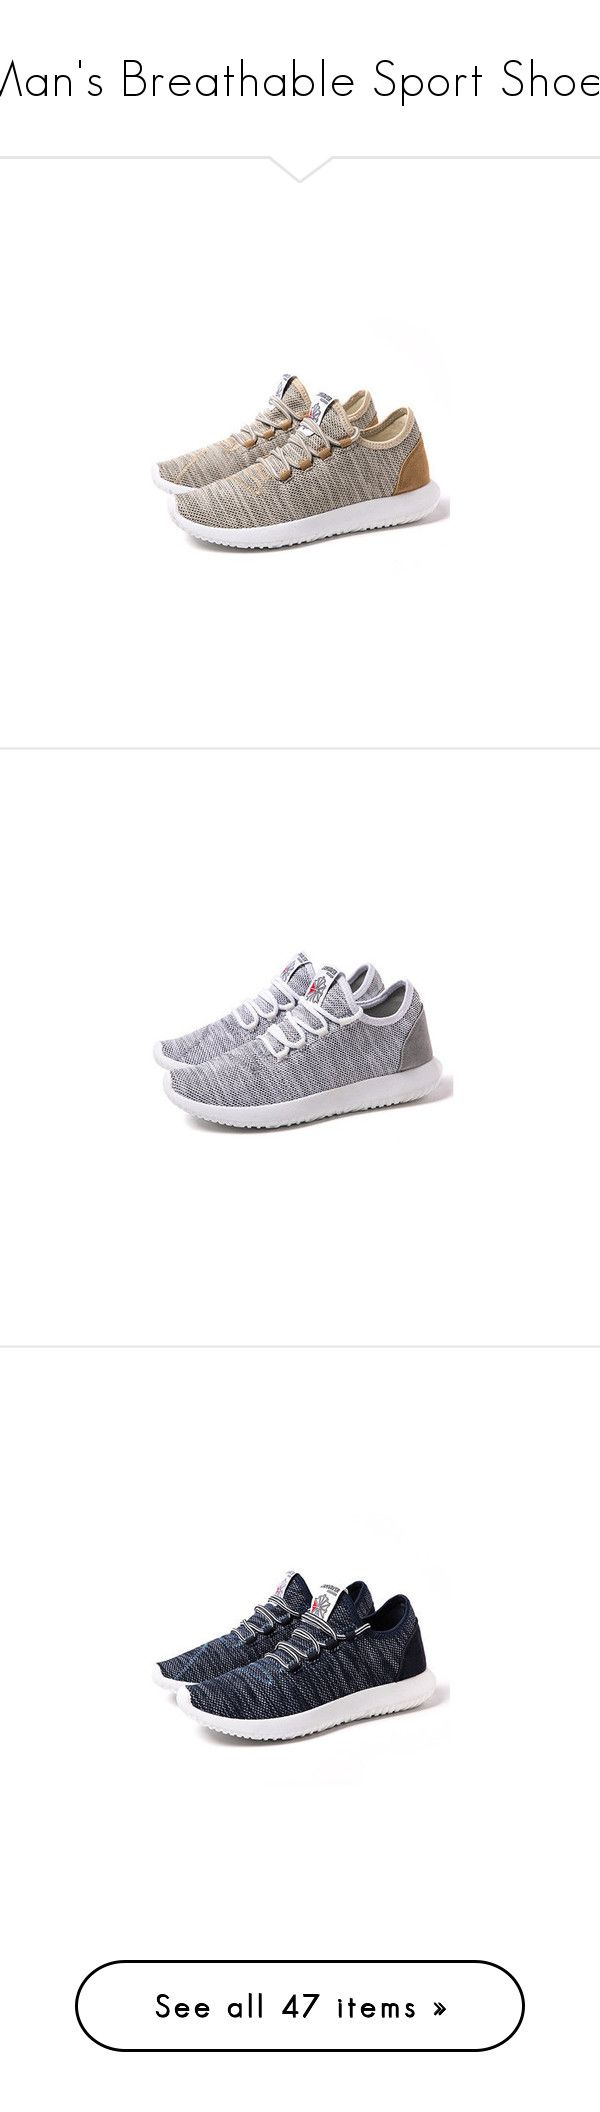 Man's Breathable Sport Shoes by lovenewchic on Polyvore featuring sport, sneakers, man, newchic, men's fashion, men's shoes, men's sneakers, khaki, mens summer shoes and mens mesh sneakers